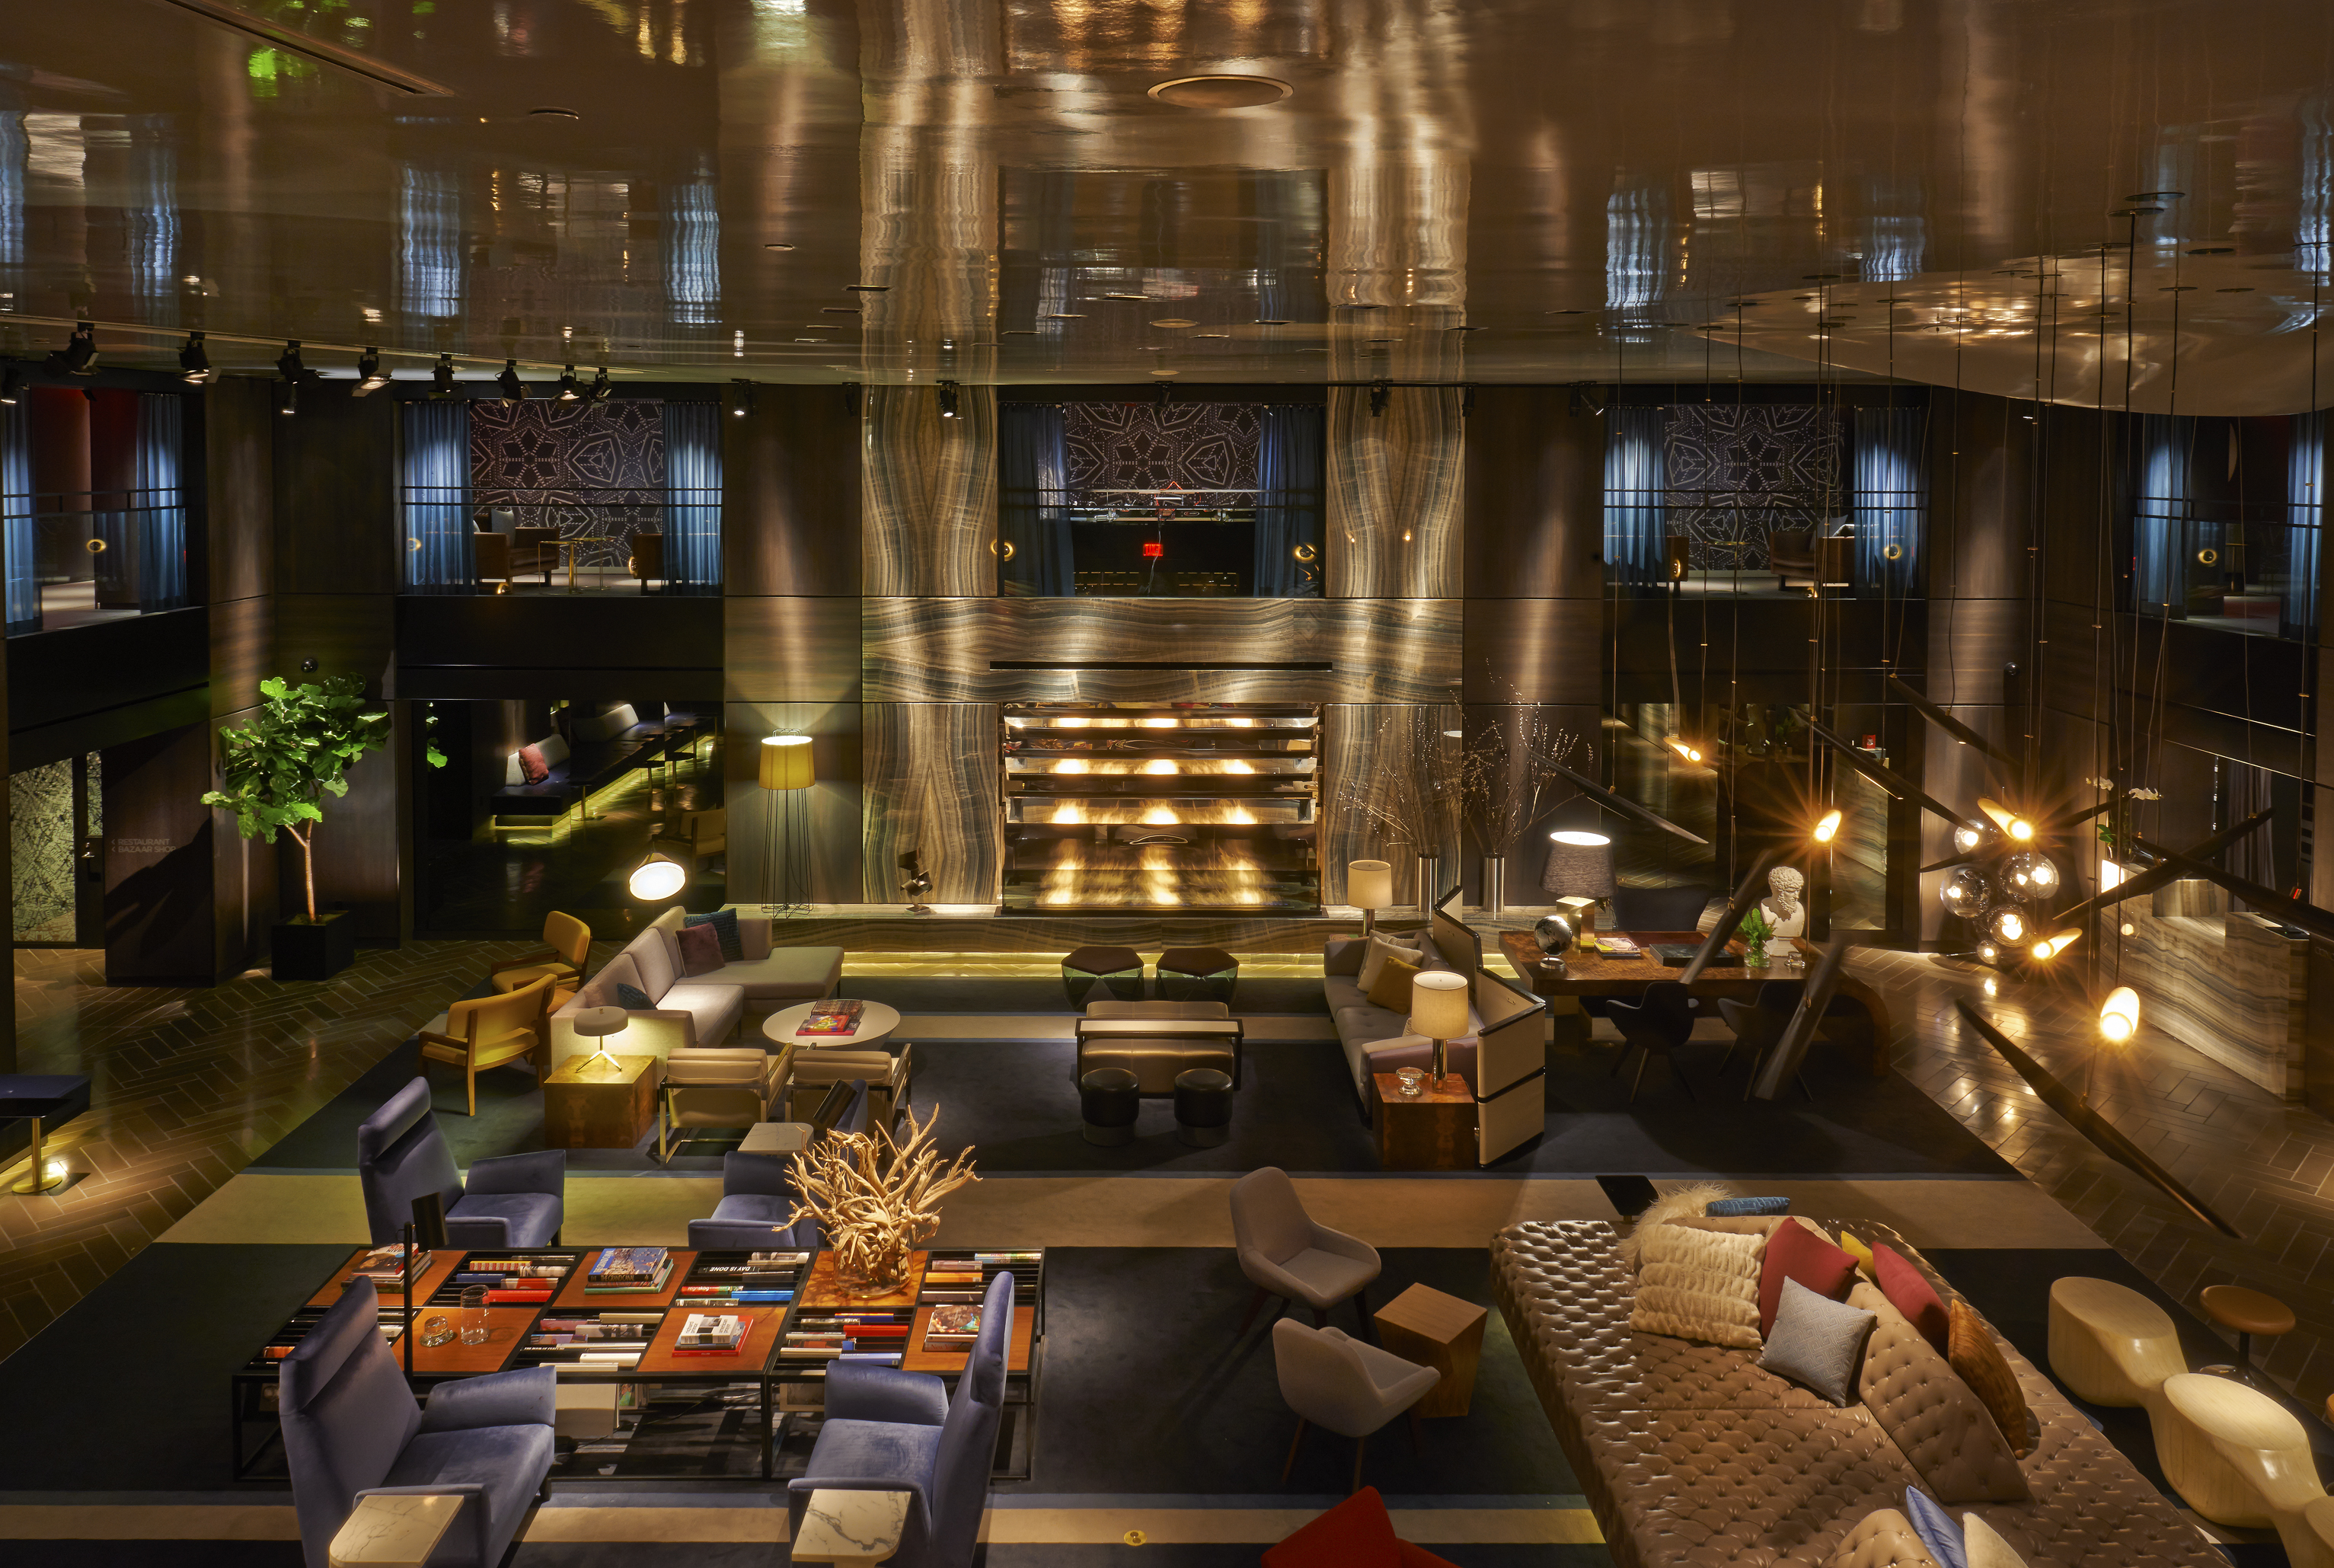 Luxury design ideas from Paramount Hotel in New York Haunted Hotels Haunted Hotels For A Spooky Halloween Escape Luxury design ideas from Paramount Hotel in New York Haunted Hotels Haunted Hotels For A Spooky Halloween Escape Luxury design ideas from Paramount Hotel in New York